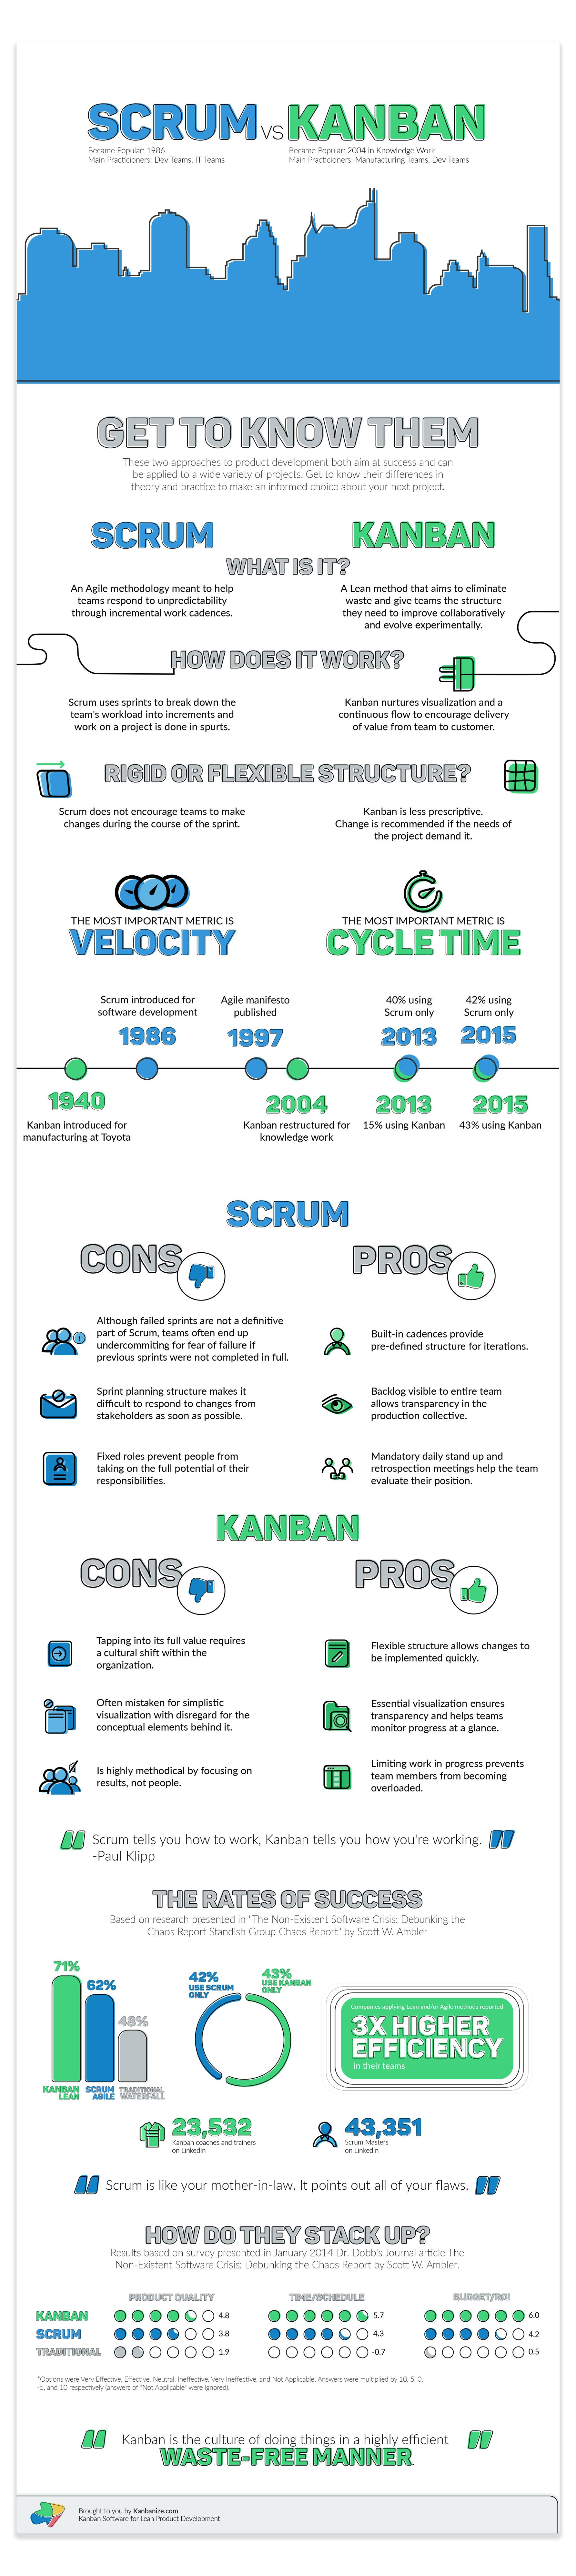 Kanban vs scrum infographic kanbanize blog tridentsqa for Sdlc vs scrum